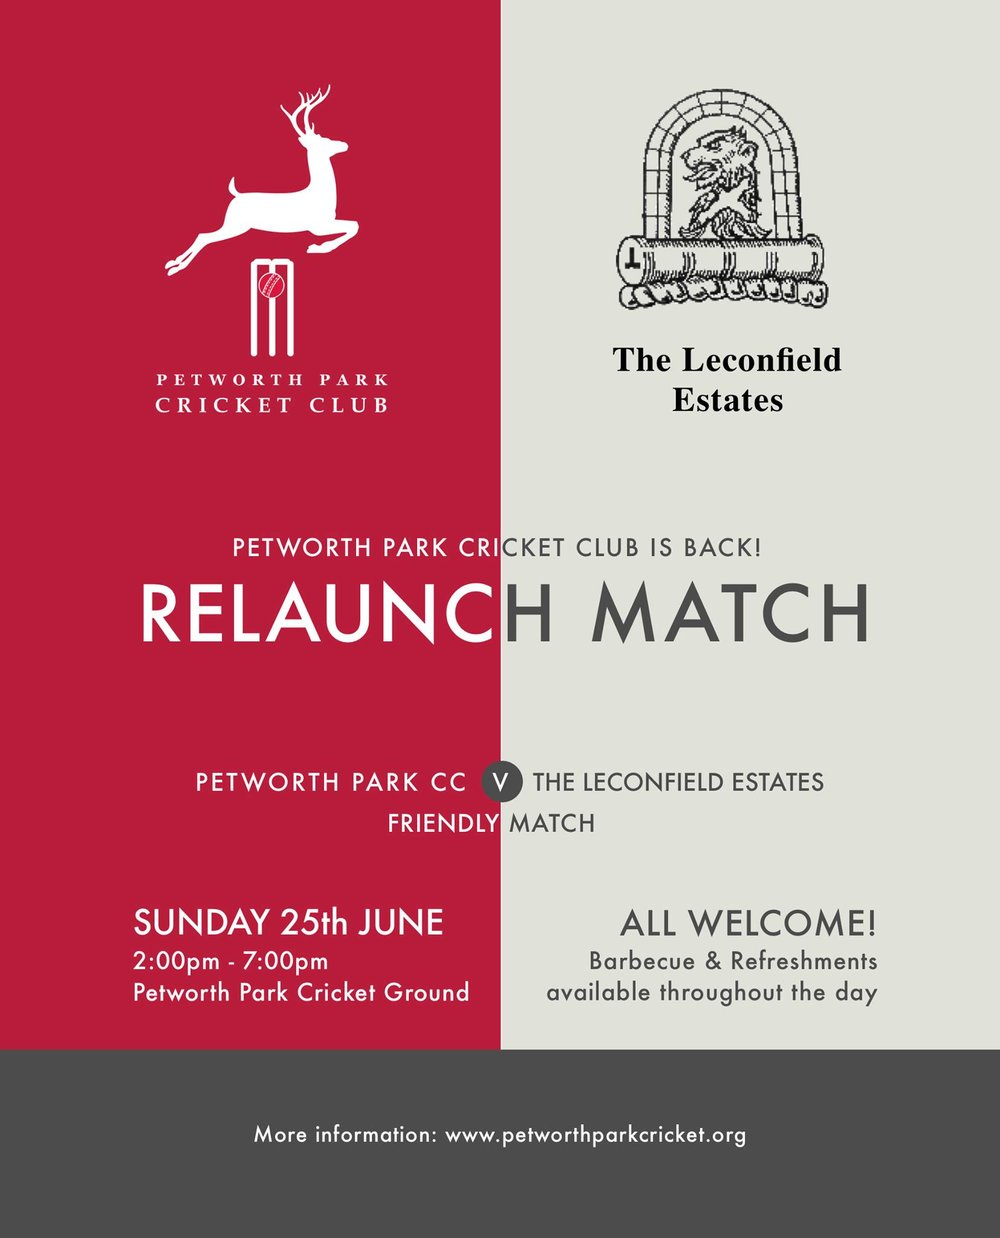 Relaunch Match - Petworth Park CC v The Leconfield Estates